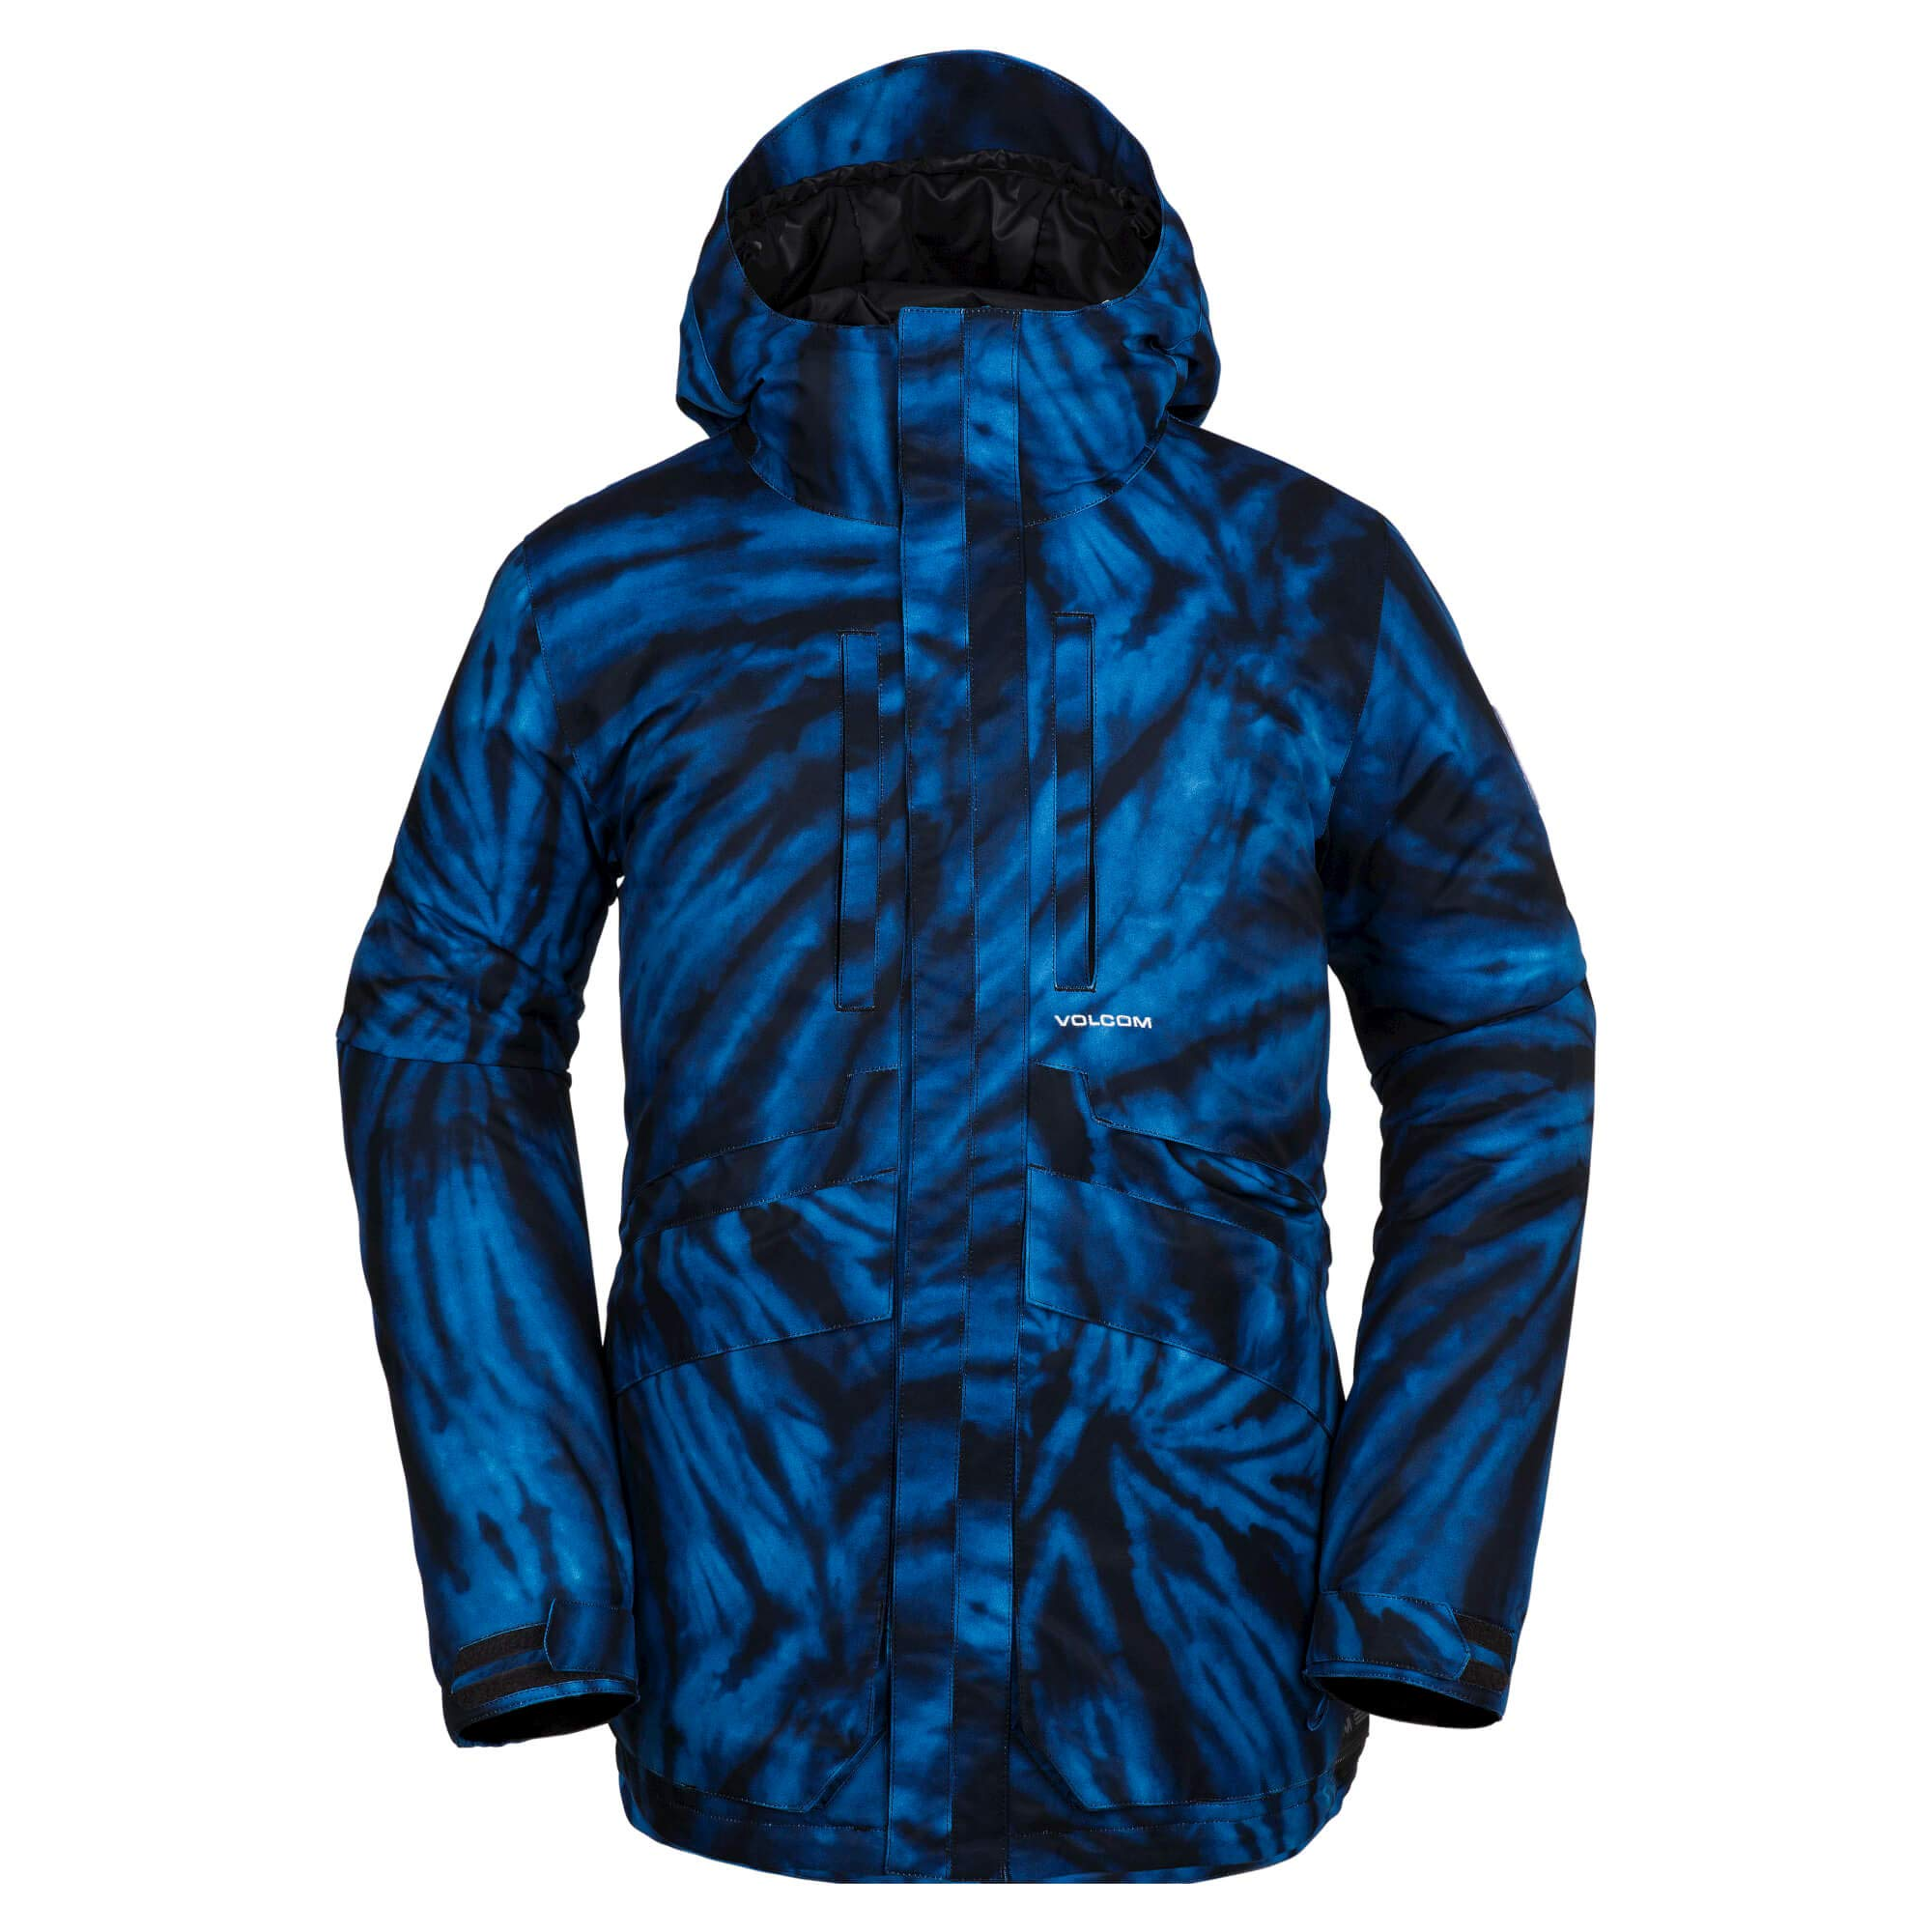 Volcom Men's Fifty 2 Layer Shell Snow Jacket, Blue tie/dye, Large